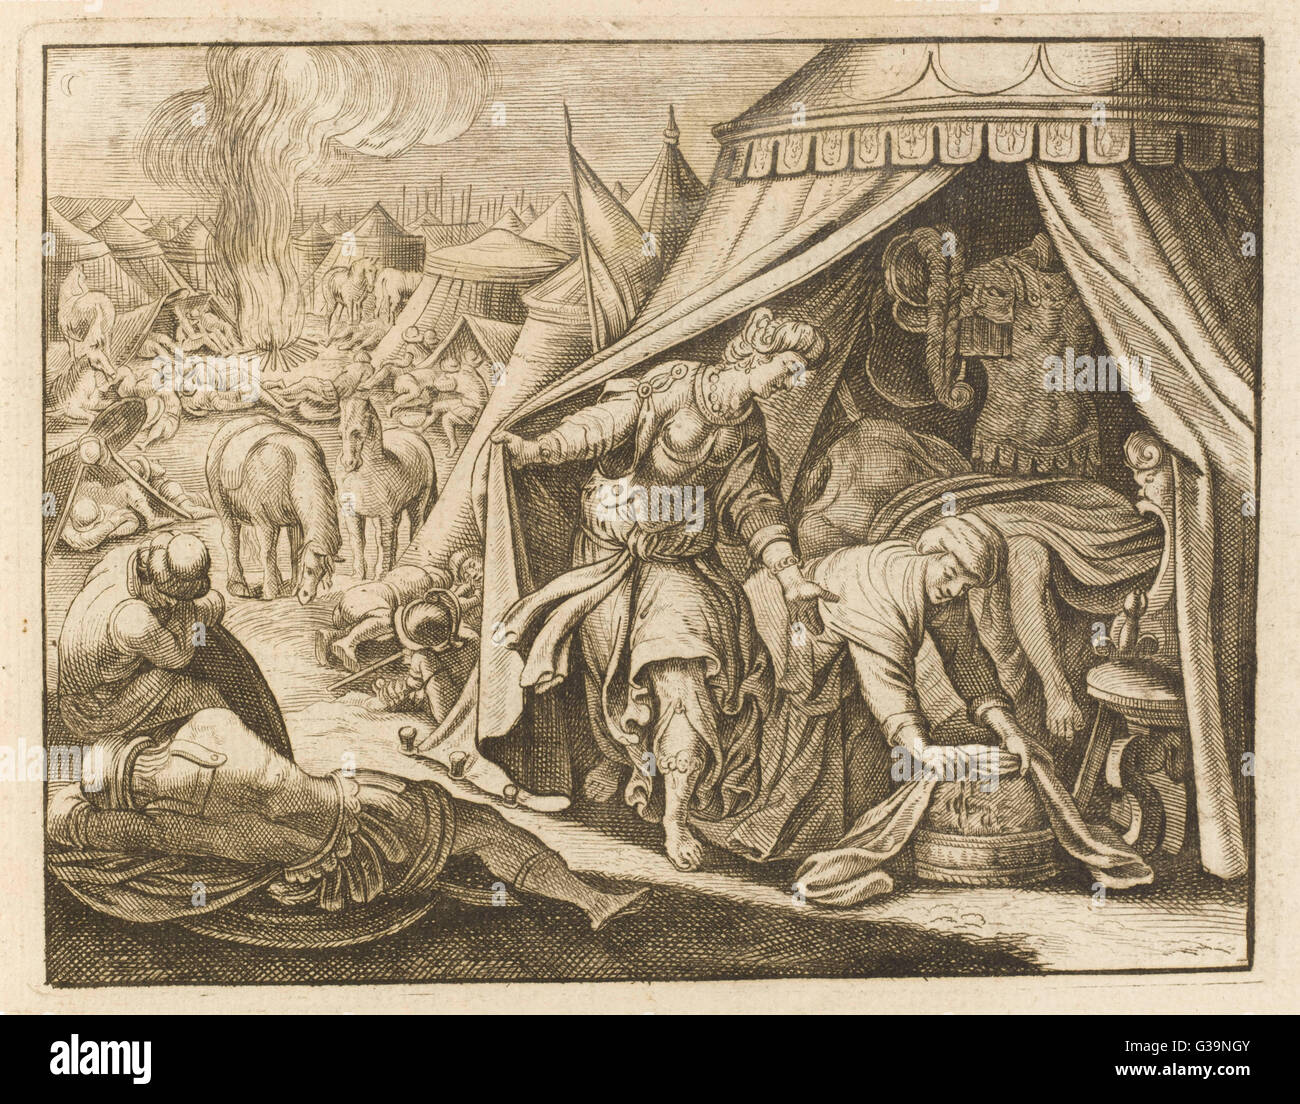 A pious widow of Bethulia, she  saves her people by making her  way to the tent of Holofernes,  who has been sent - Stock Image